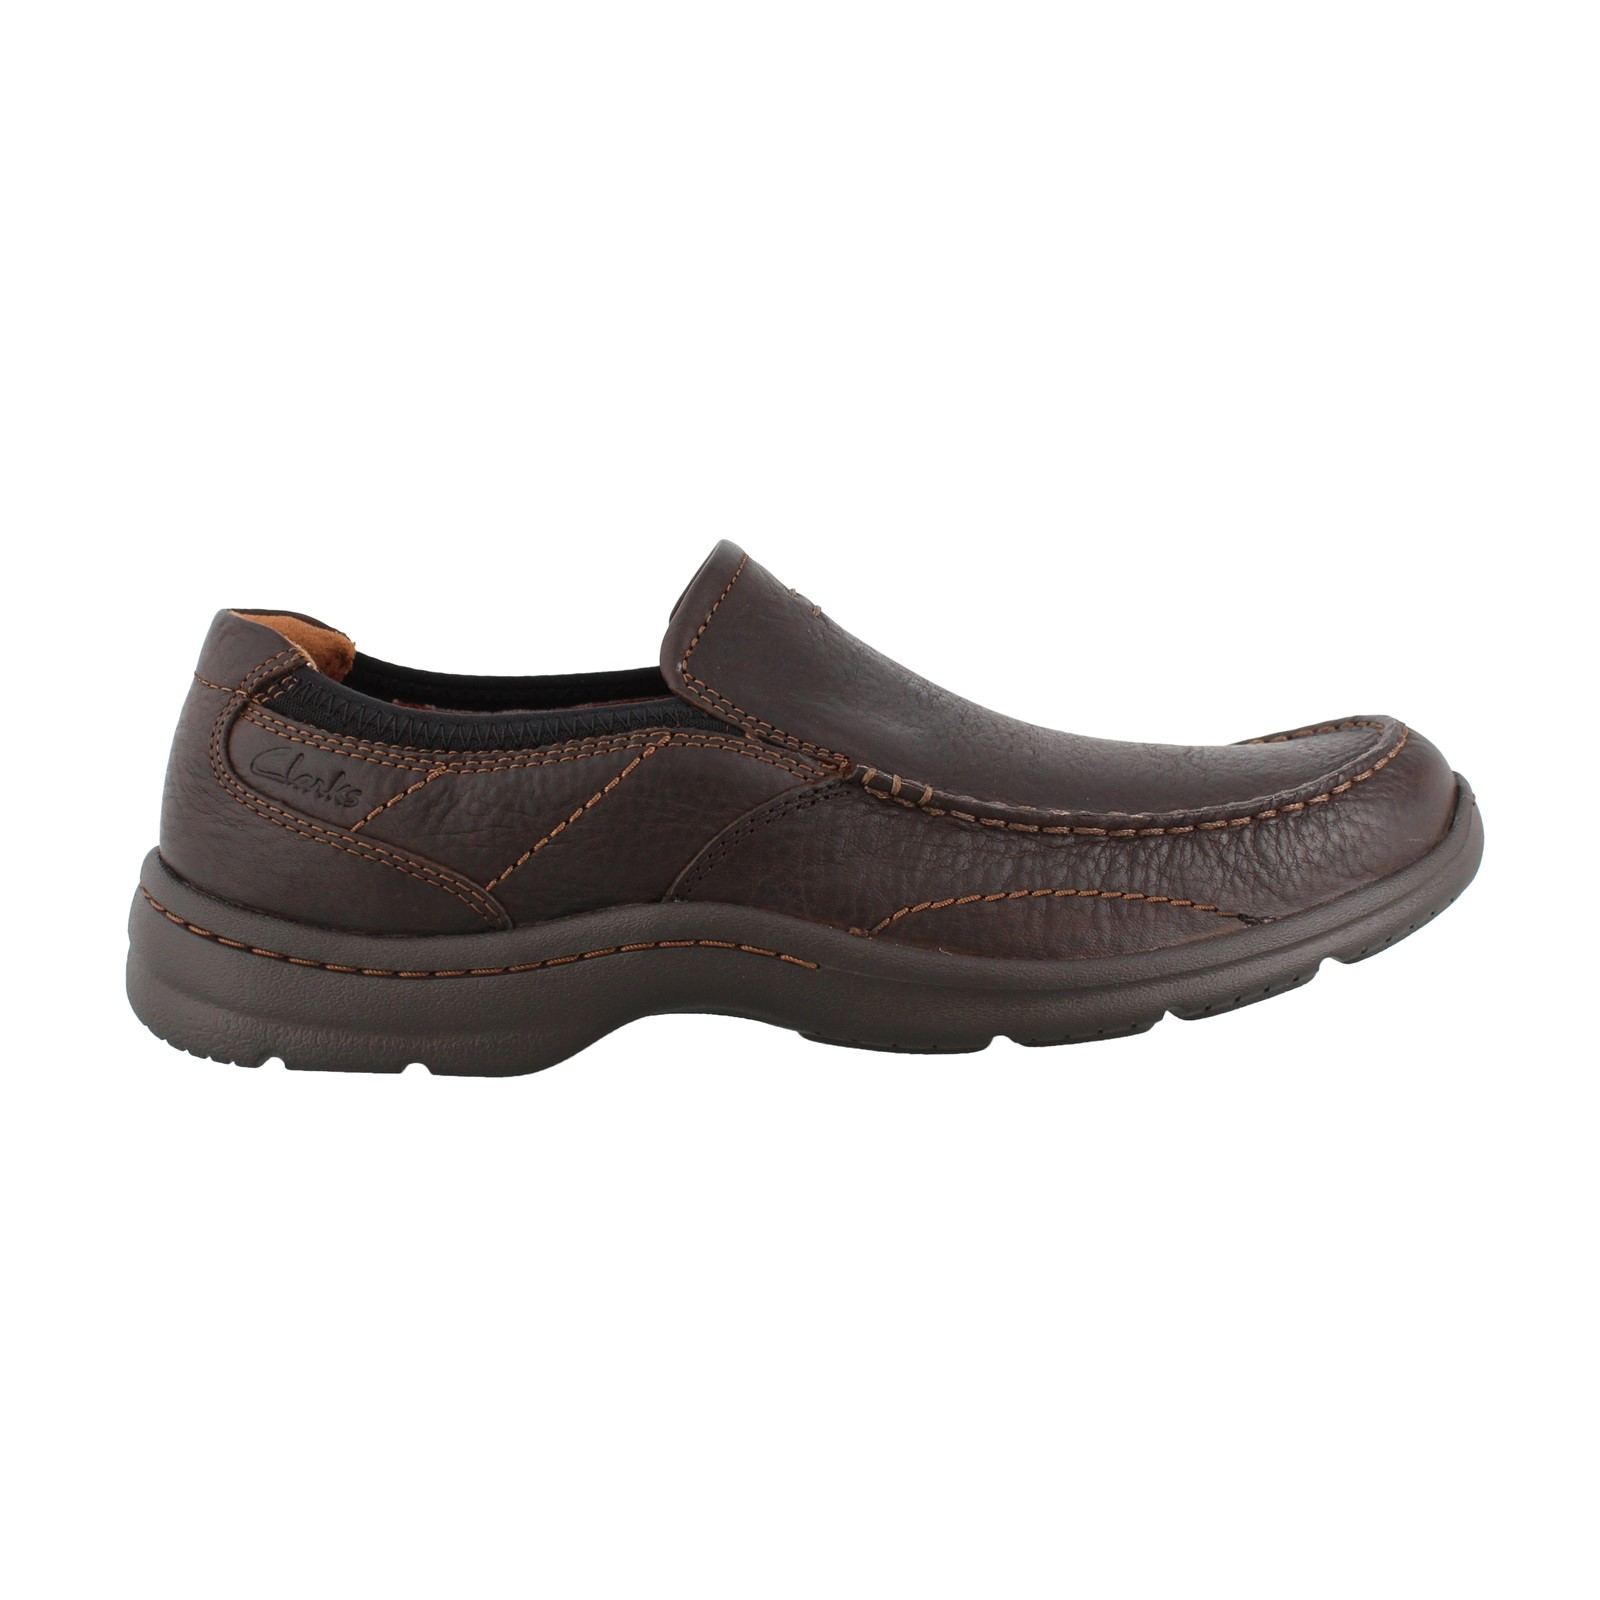 Men's Clarks, Niland Energy Slip on Casual Loafer